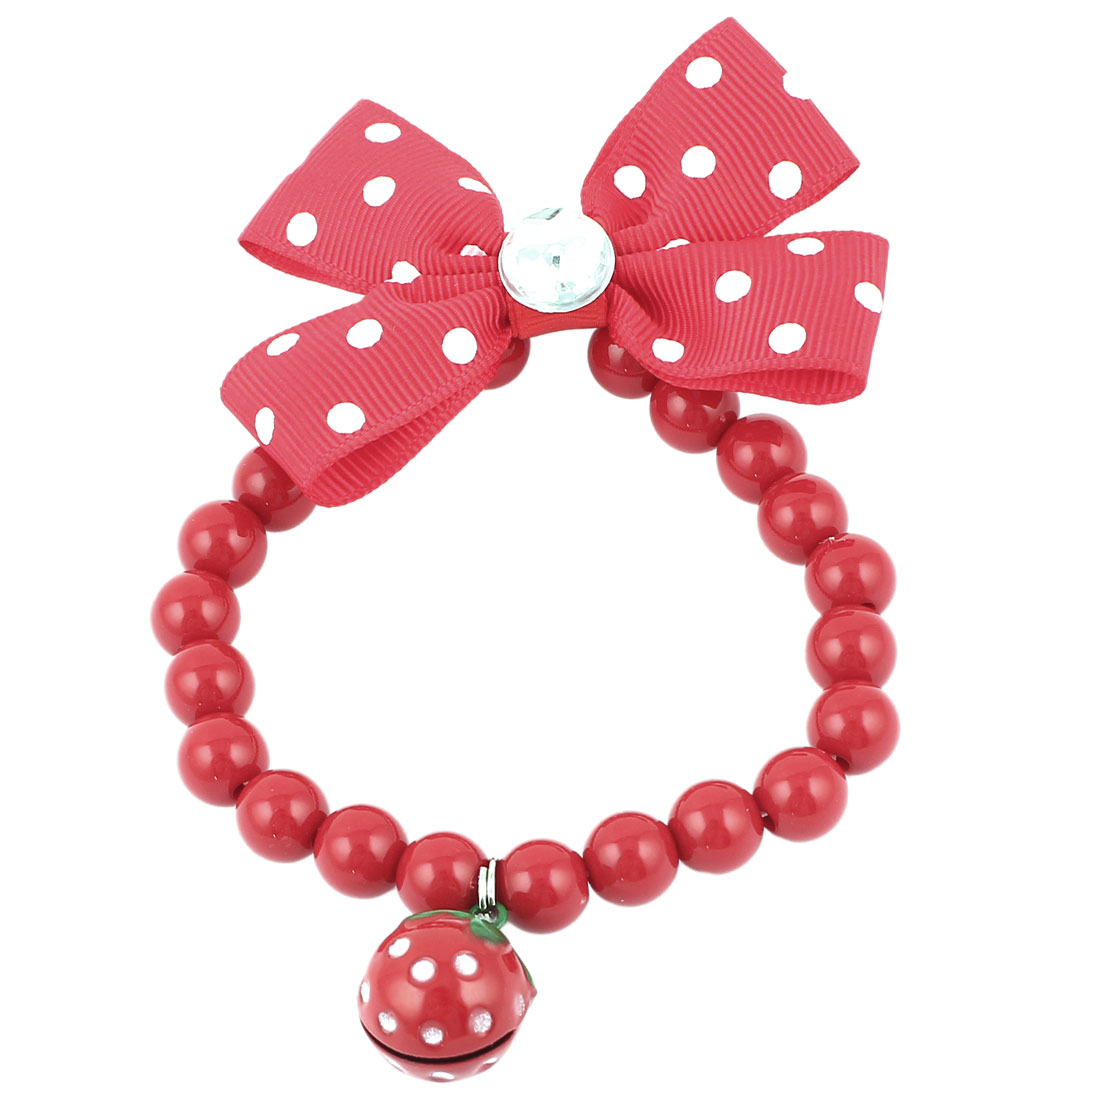 Metal Bell Pendant Bowtie Accent Pet Dog Plastic Beads Collar Necklace Red XS